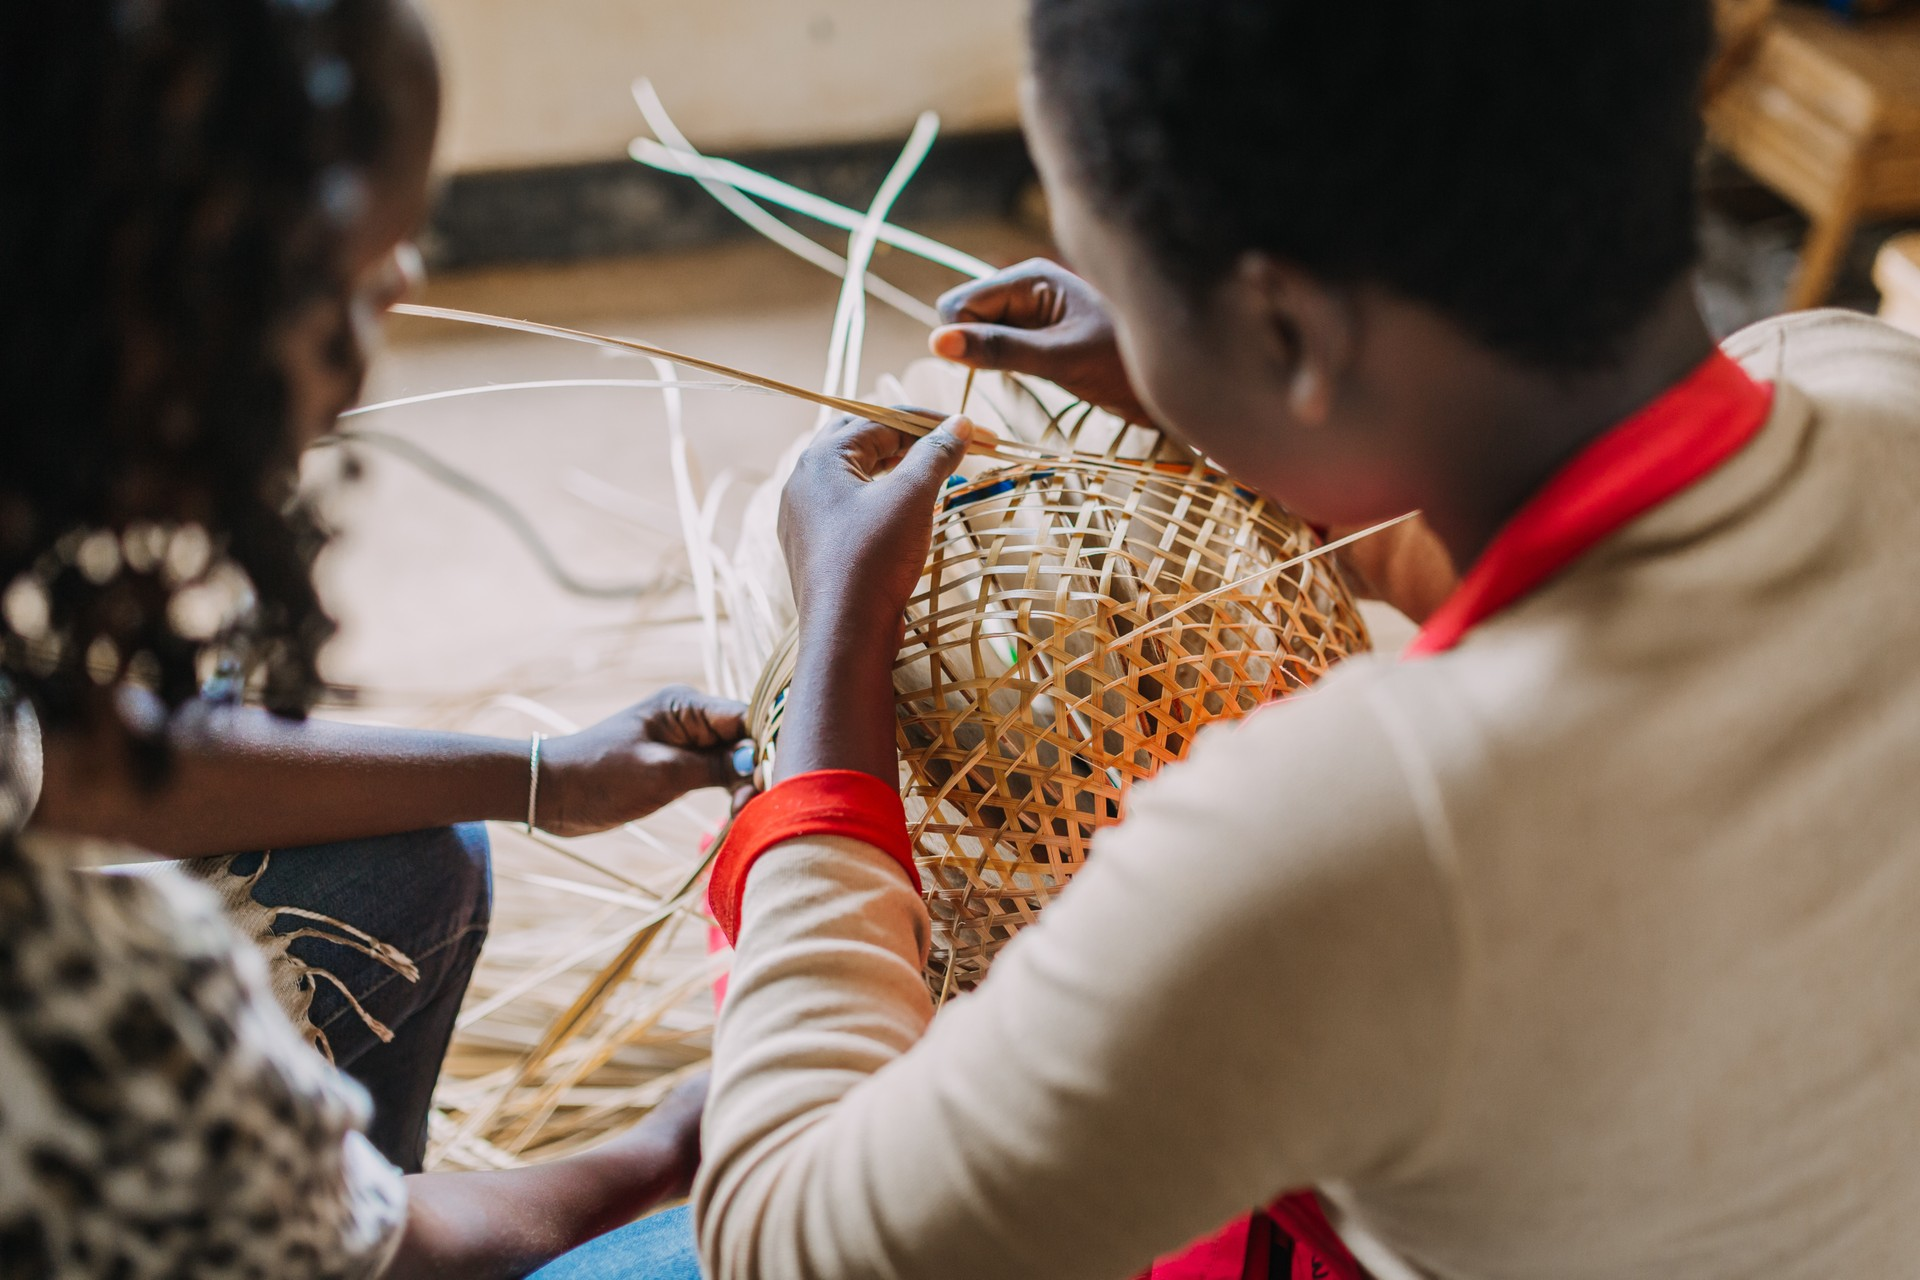 Rwandan women weaving a basket